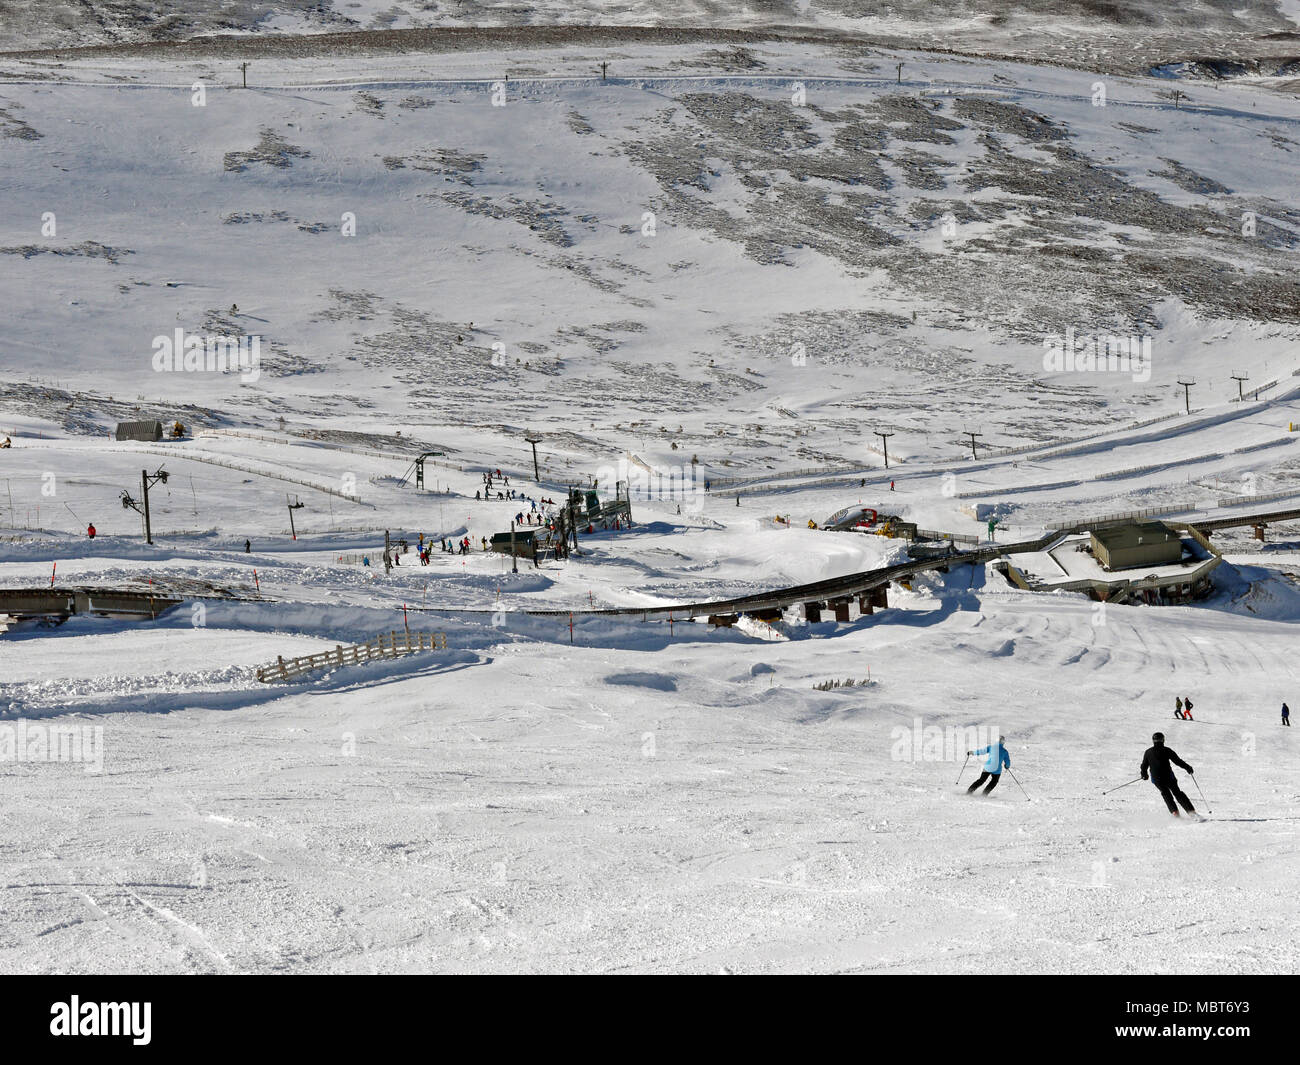 Cairngorm Mountain ski resort in Scotland Stock Photo